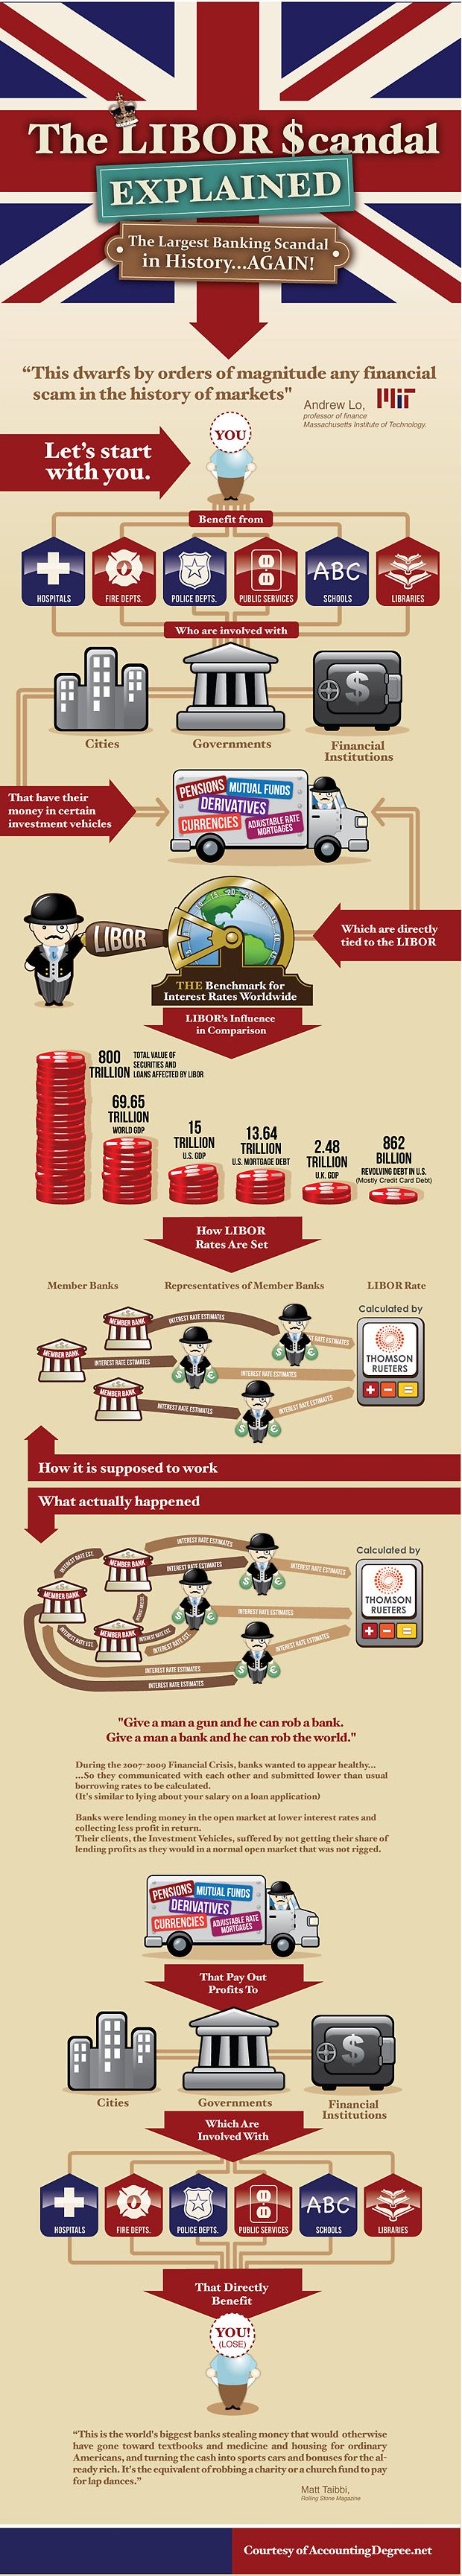 The LIBOR Scandal Explained in One Simple Infographic